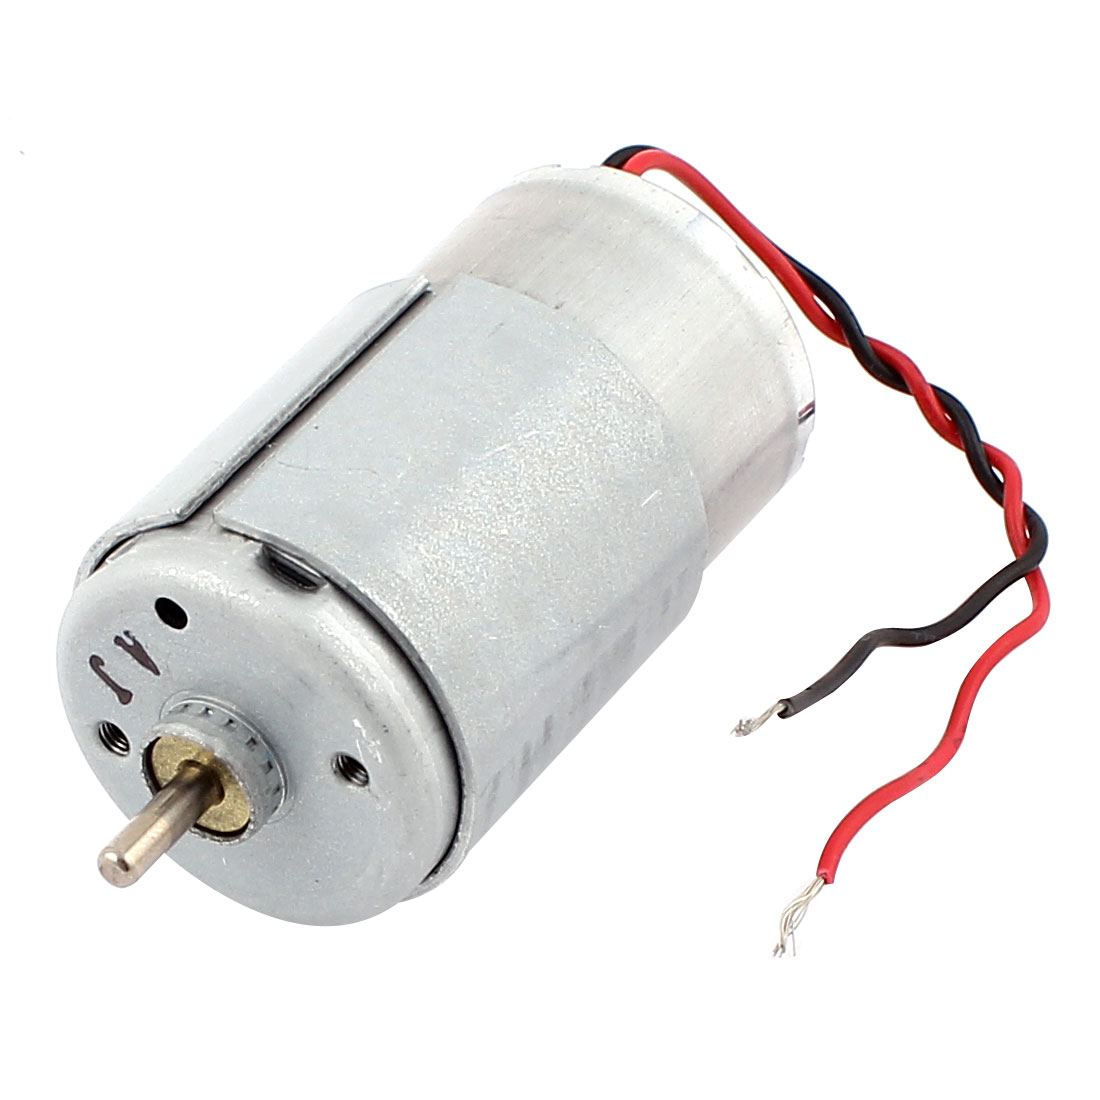 DC 24V 0.05 4300RPM Rotary Speed 3mm Round Shaft High Torque Electric Micro Motor